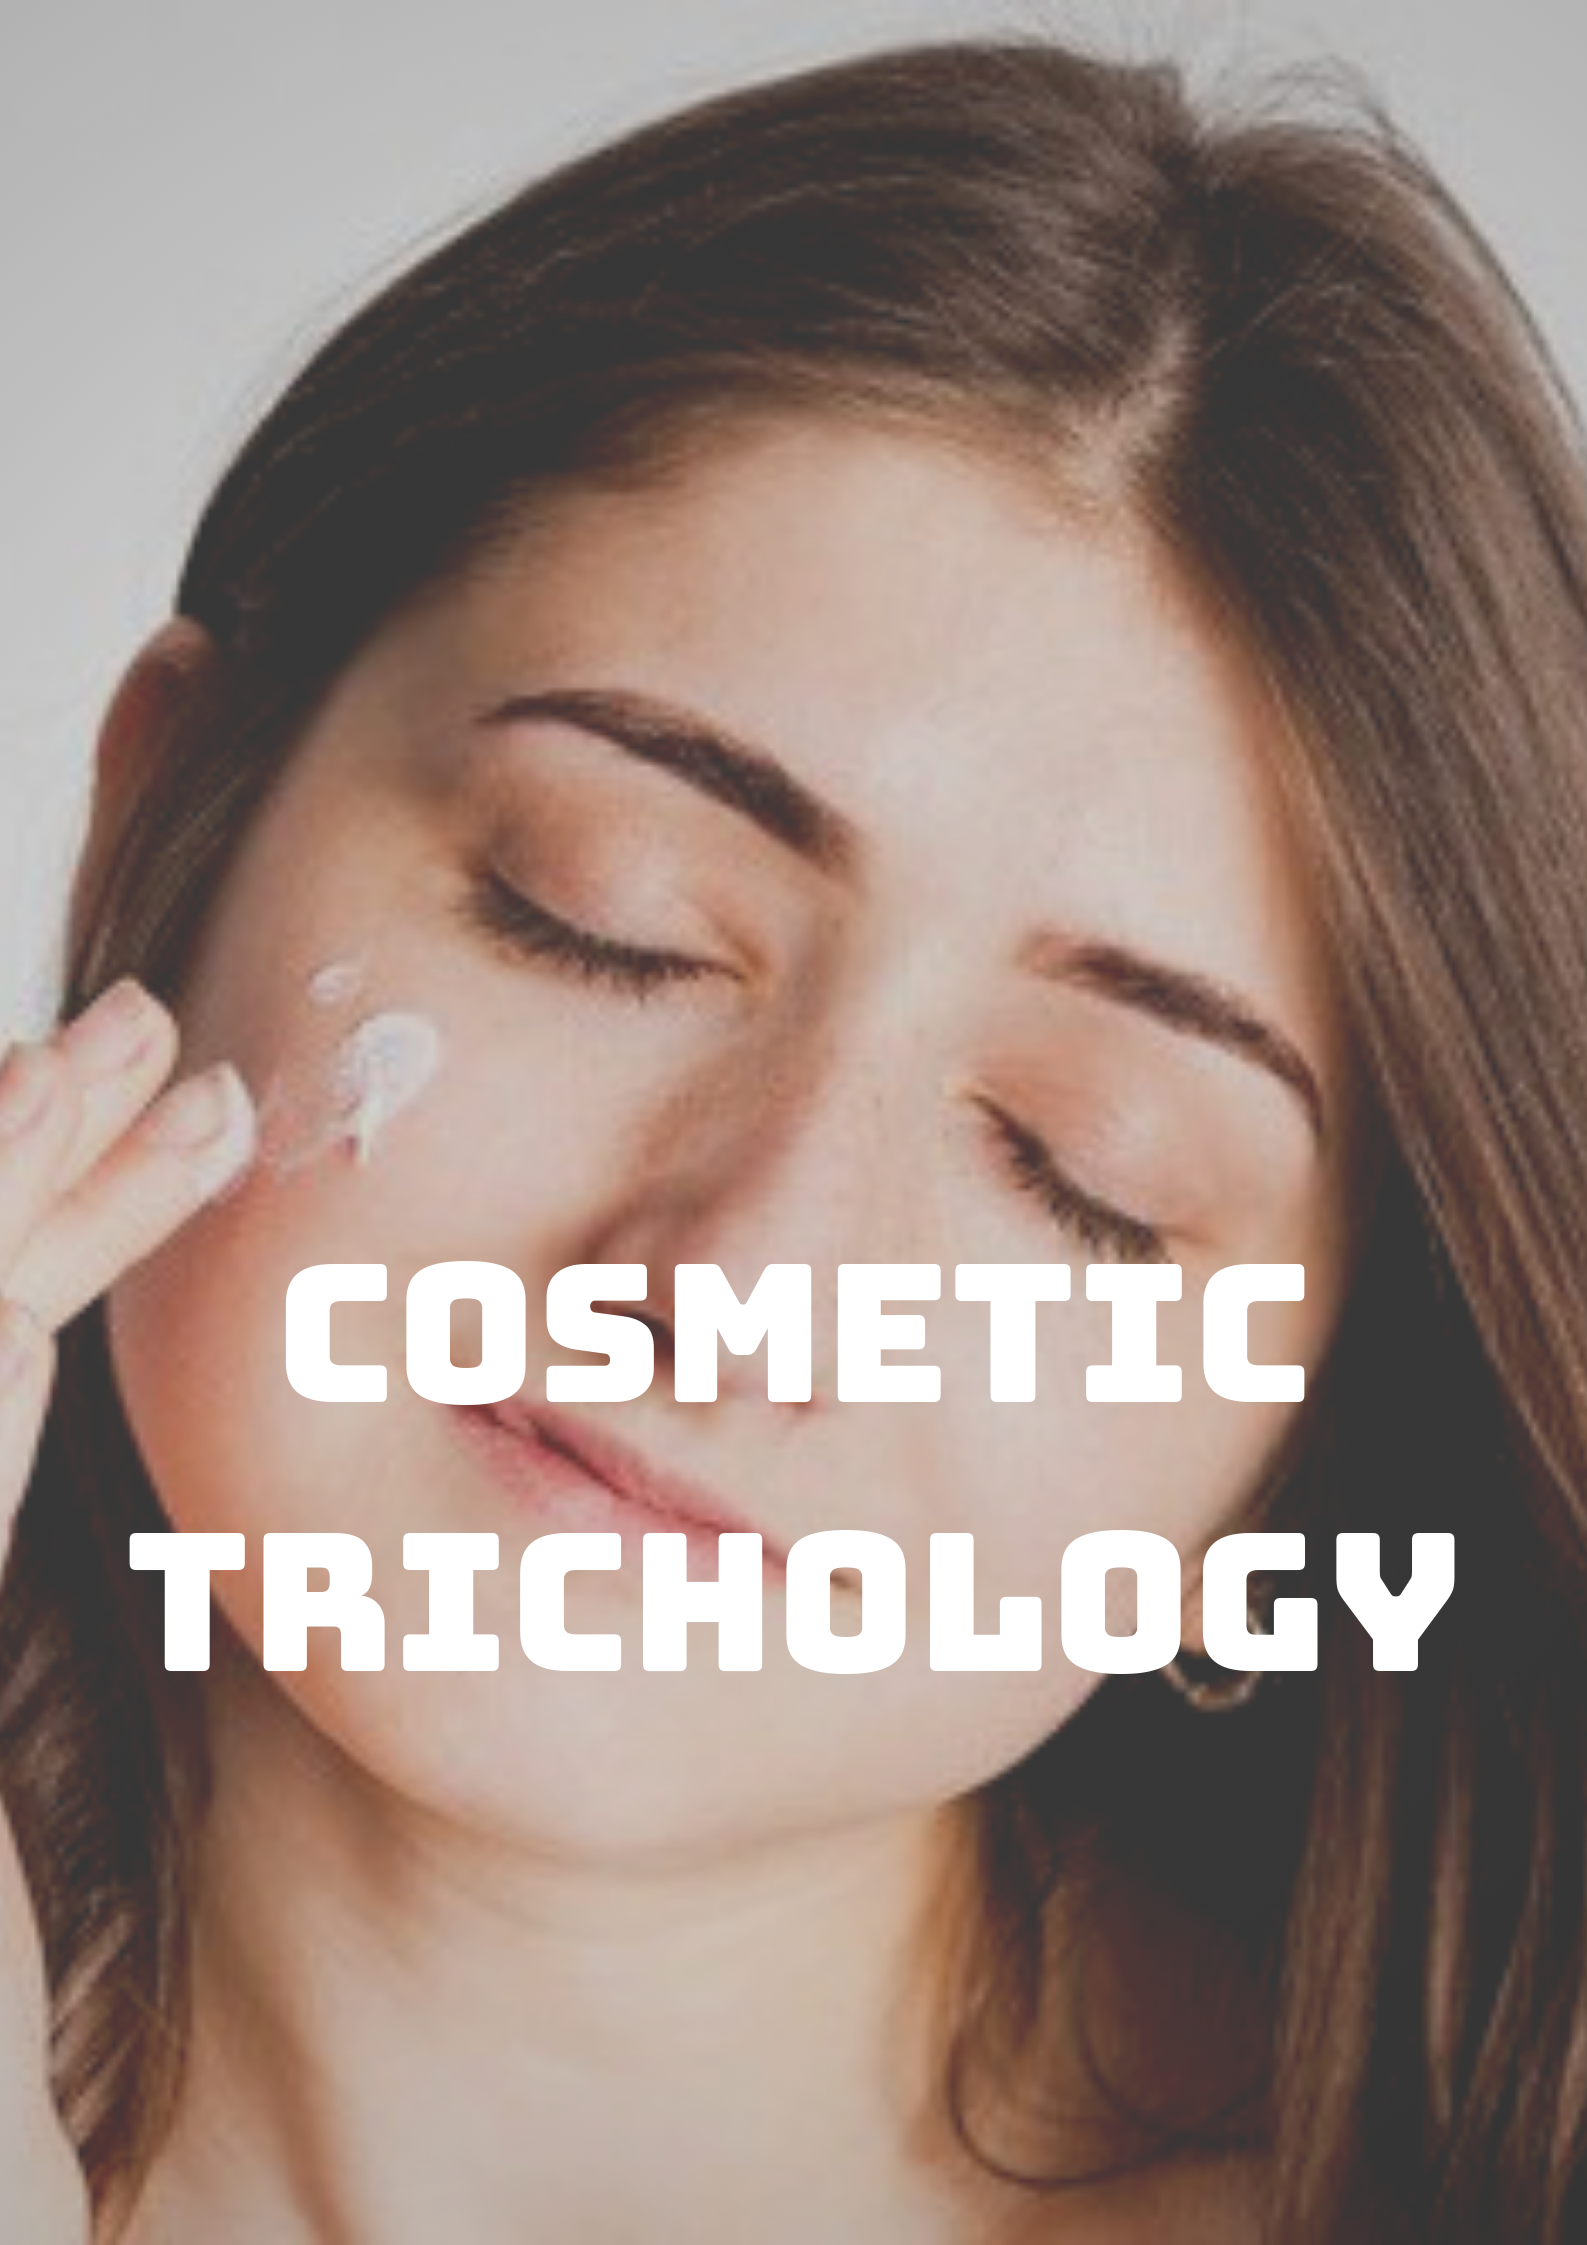 Cosmetic Trichology Photo